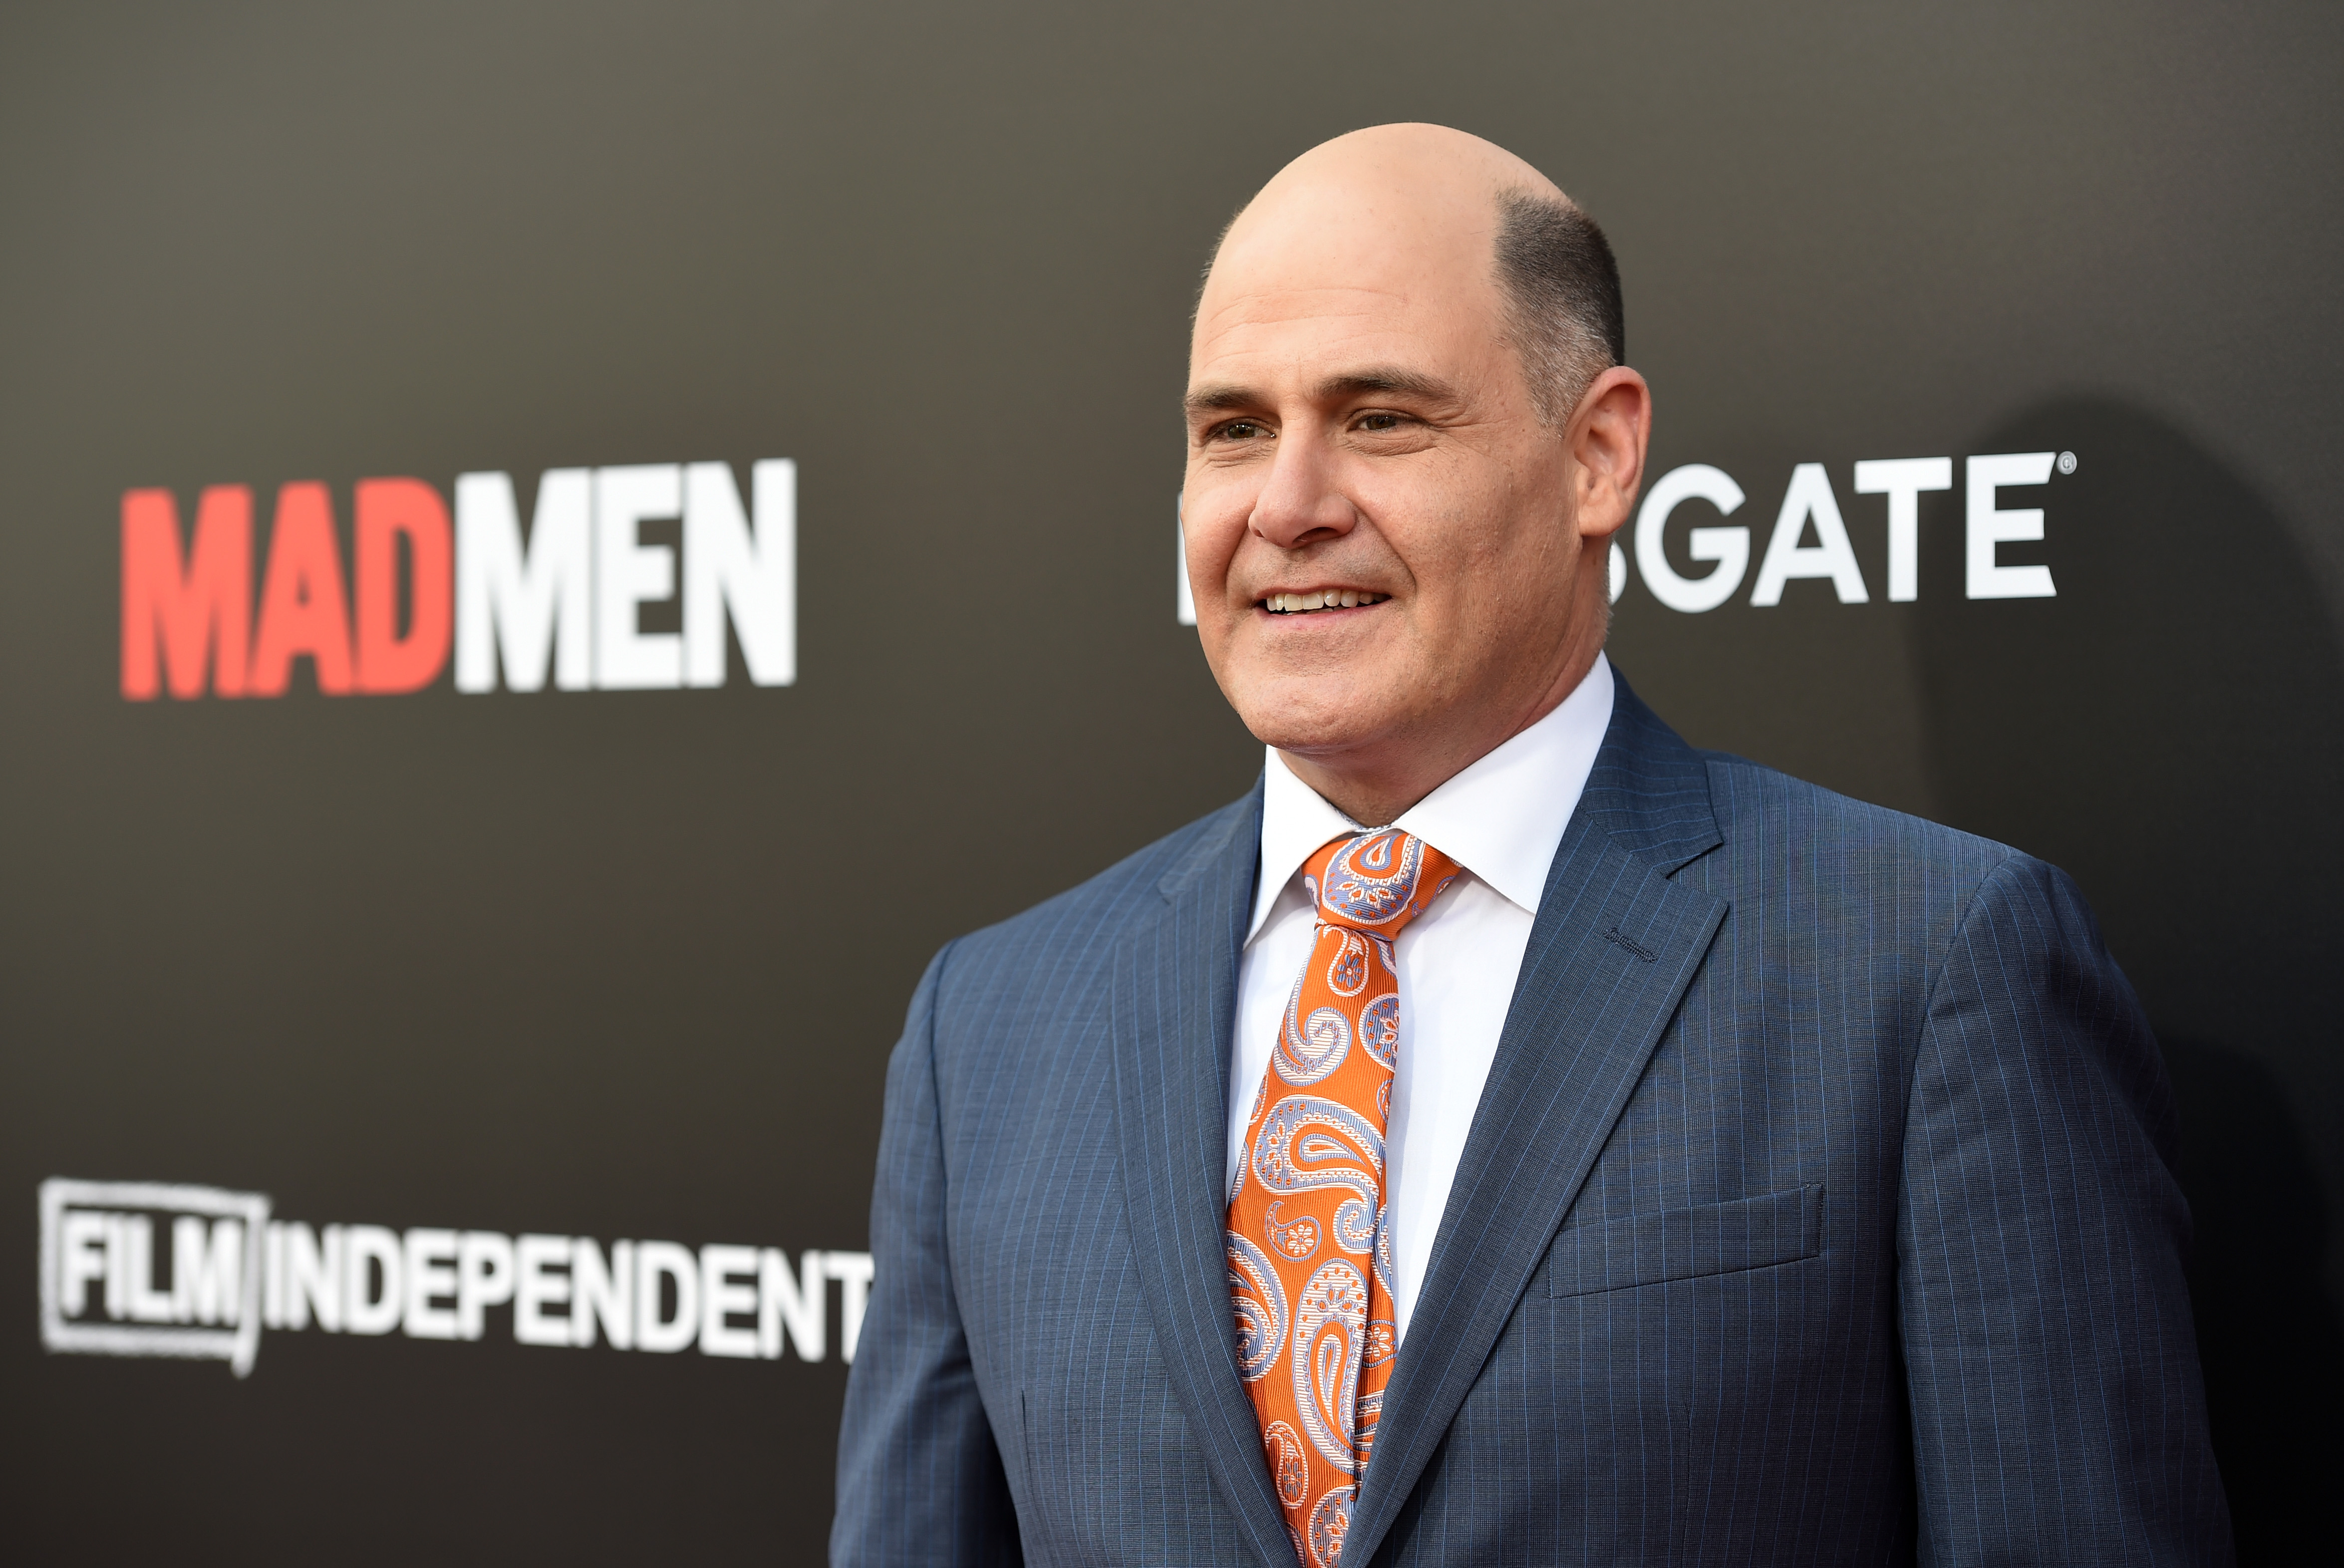 'Mad Men' Creator on Coke Ad: 'It's the Best Ad Ever Made'